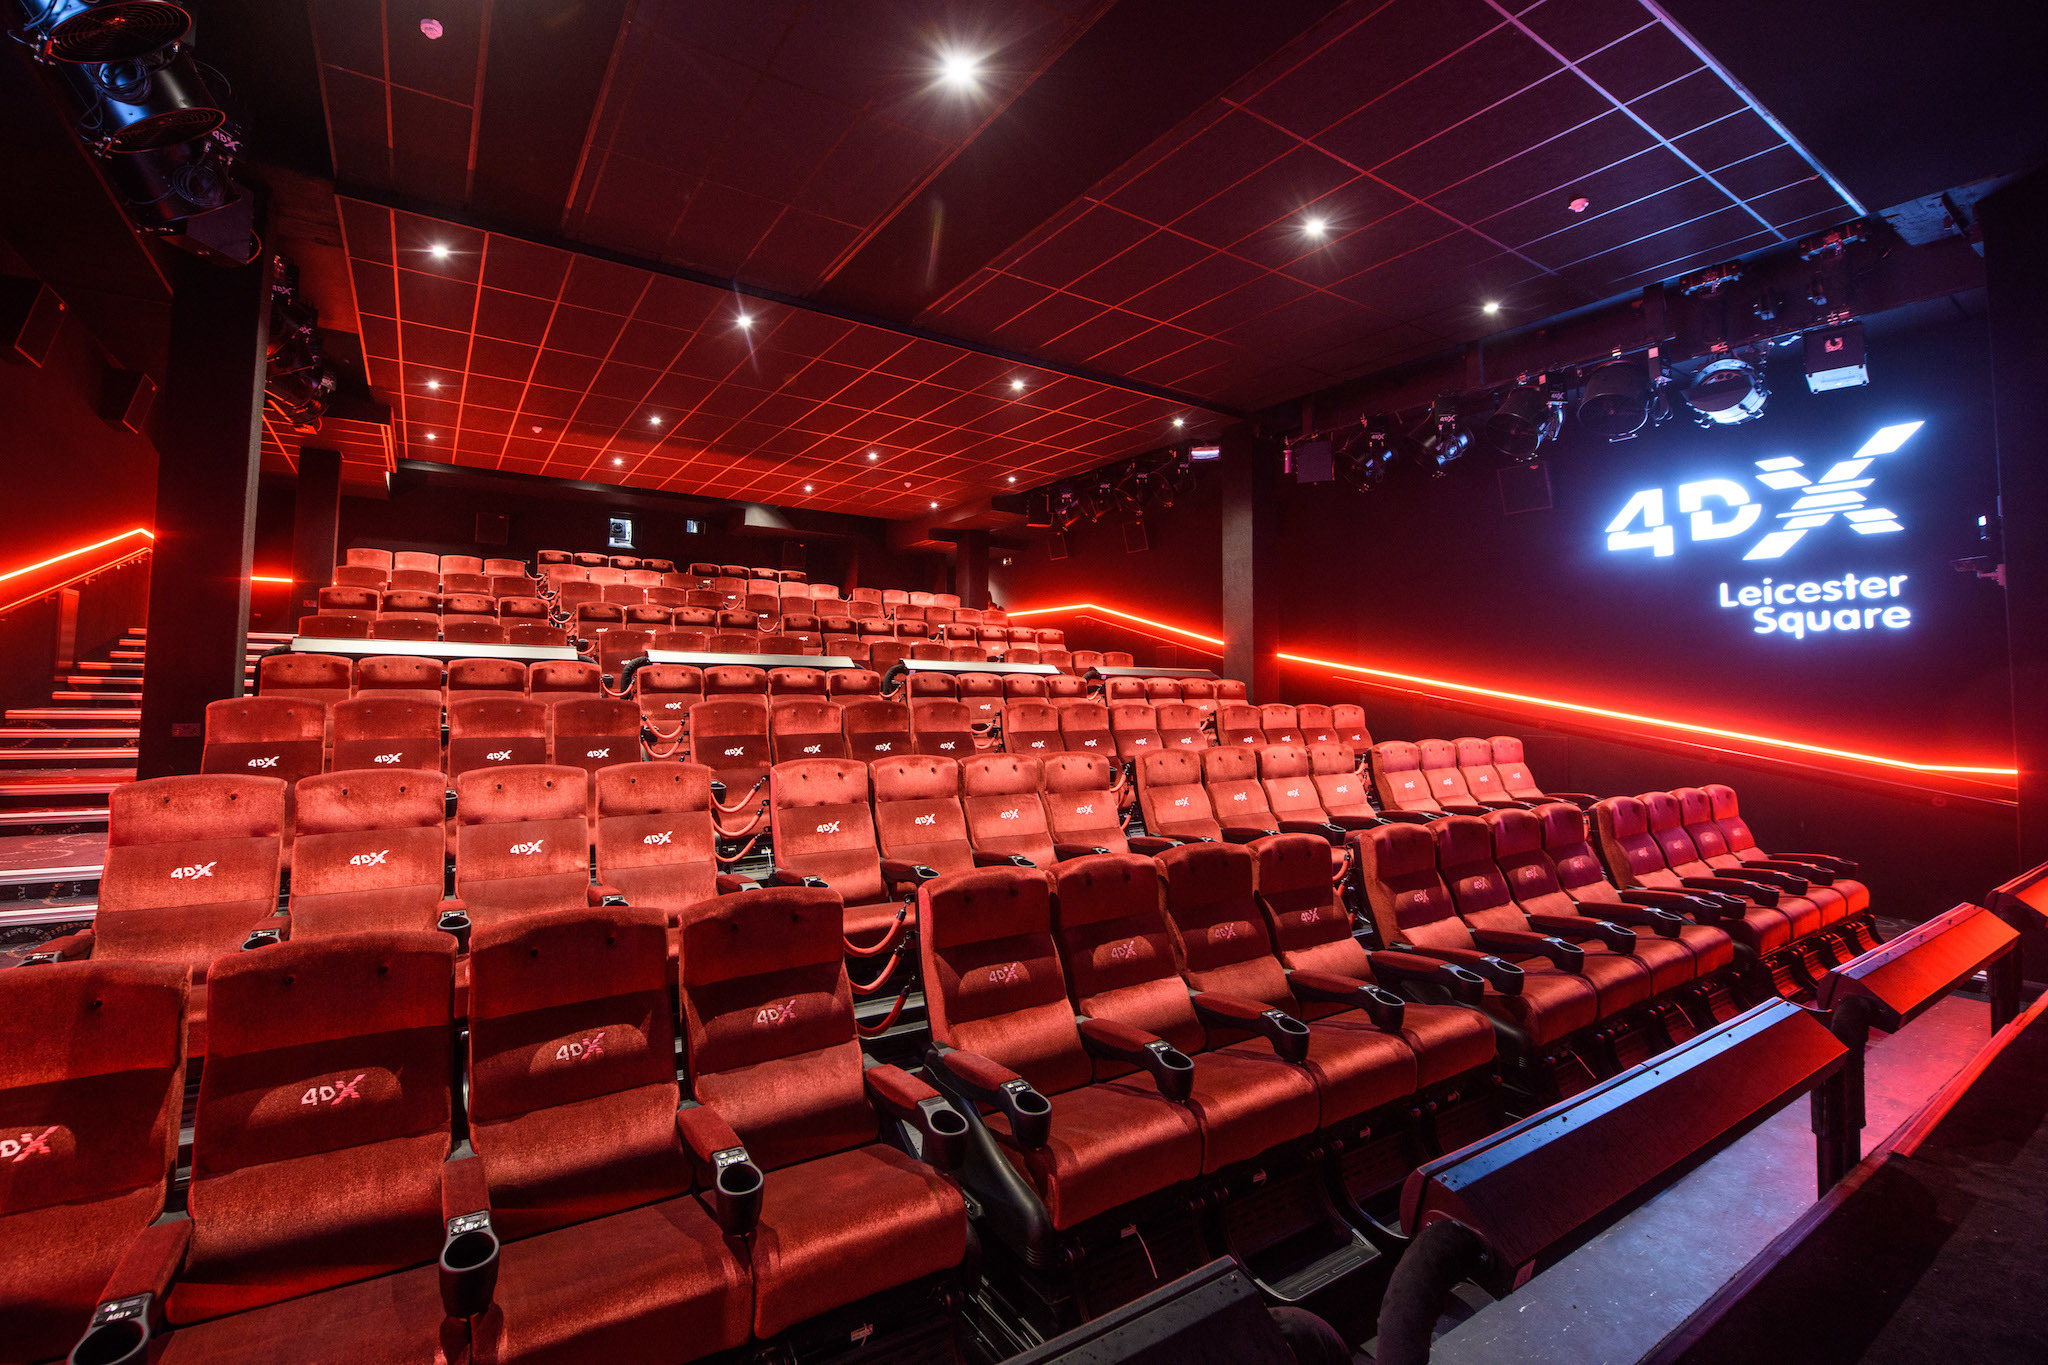 Do not reuse. Cineworld Leicester Square Refurbishment for Cineworld advertorial.